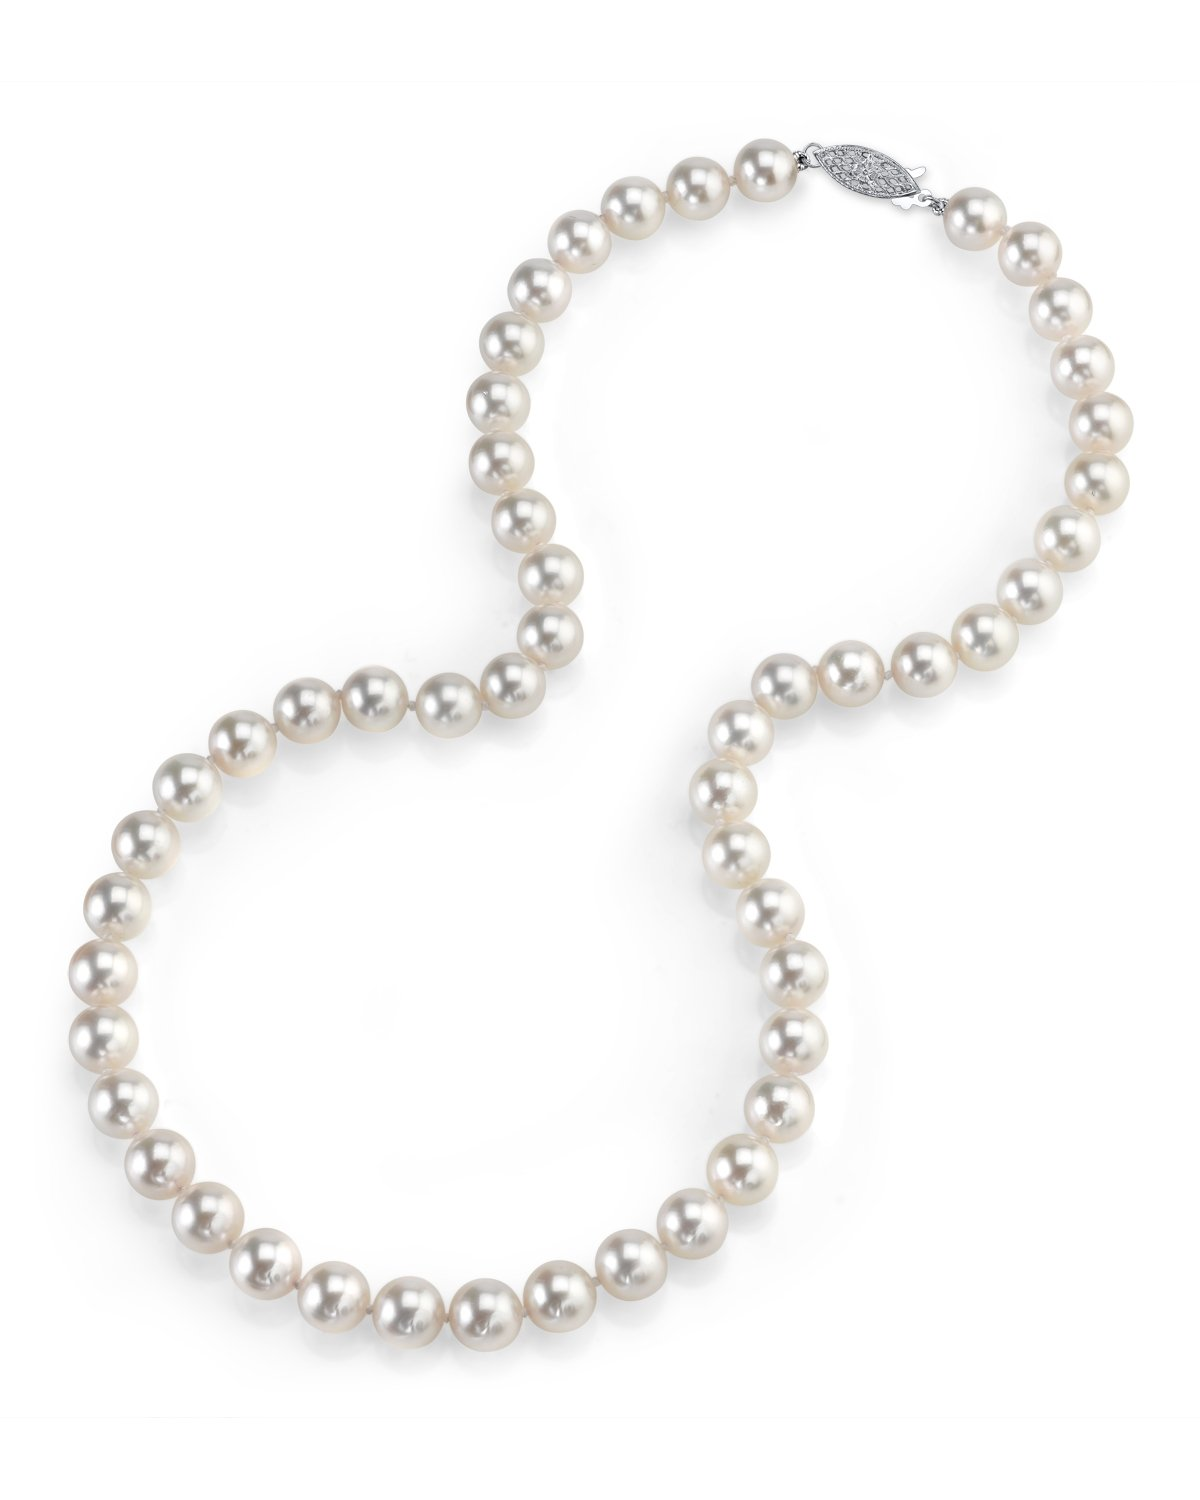 14K Gold 7.0-7.5mm Japanese Akoya Saltwater White Cultured Pearl Necklace - AAA Quality, 18'' Princess Length